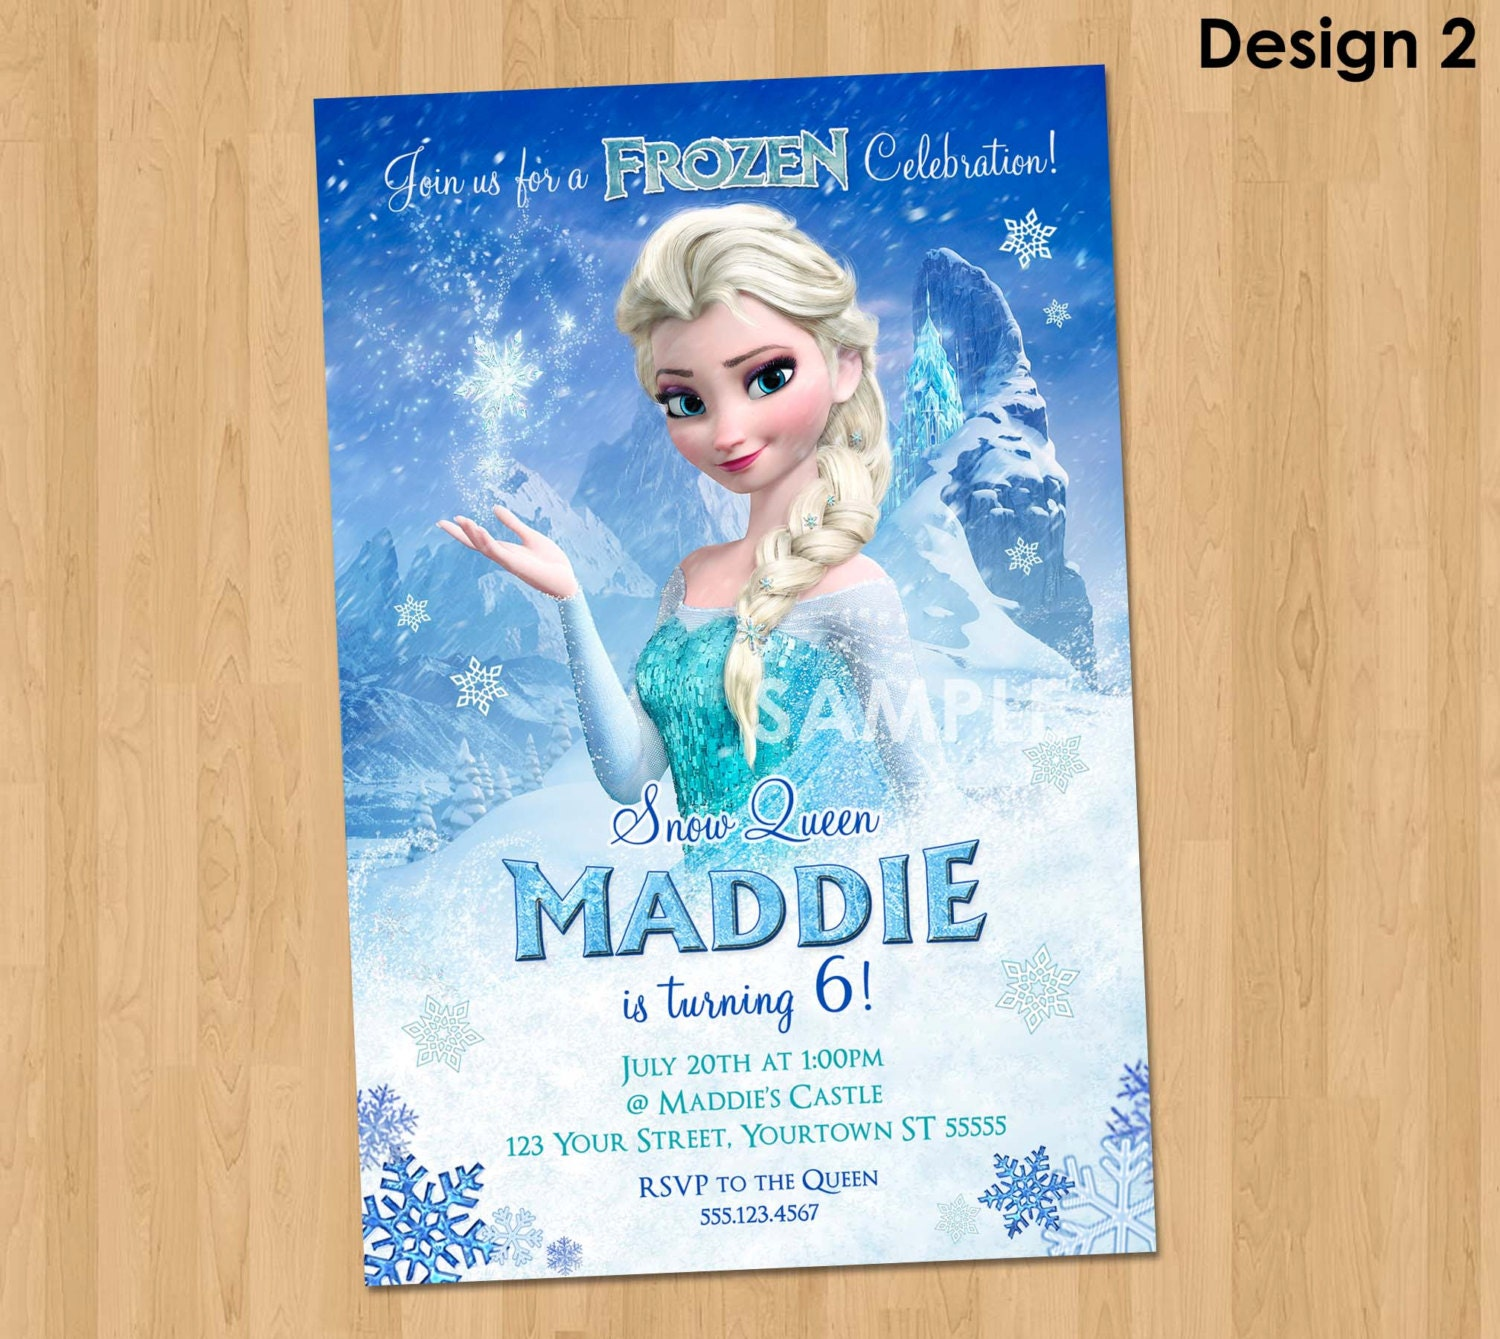 Fresh Frozen Birthday Cards Pics - laughterisaleap.com